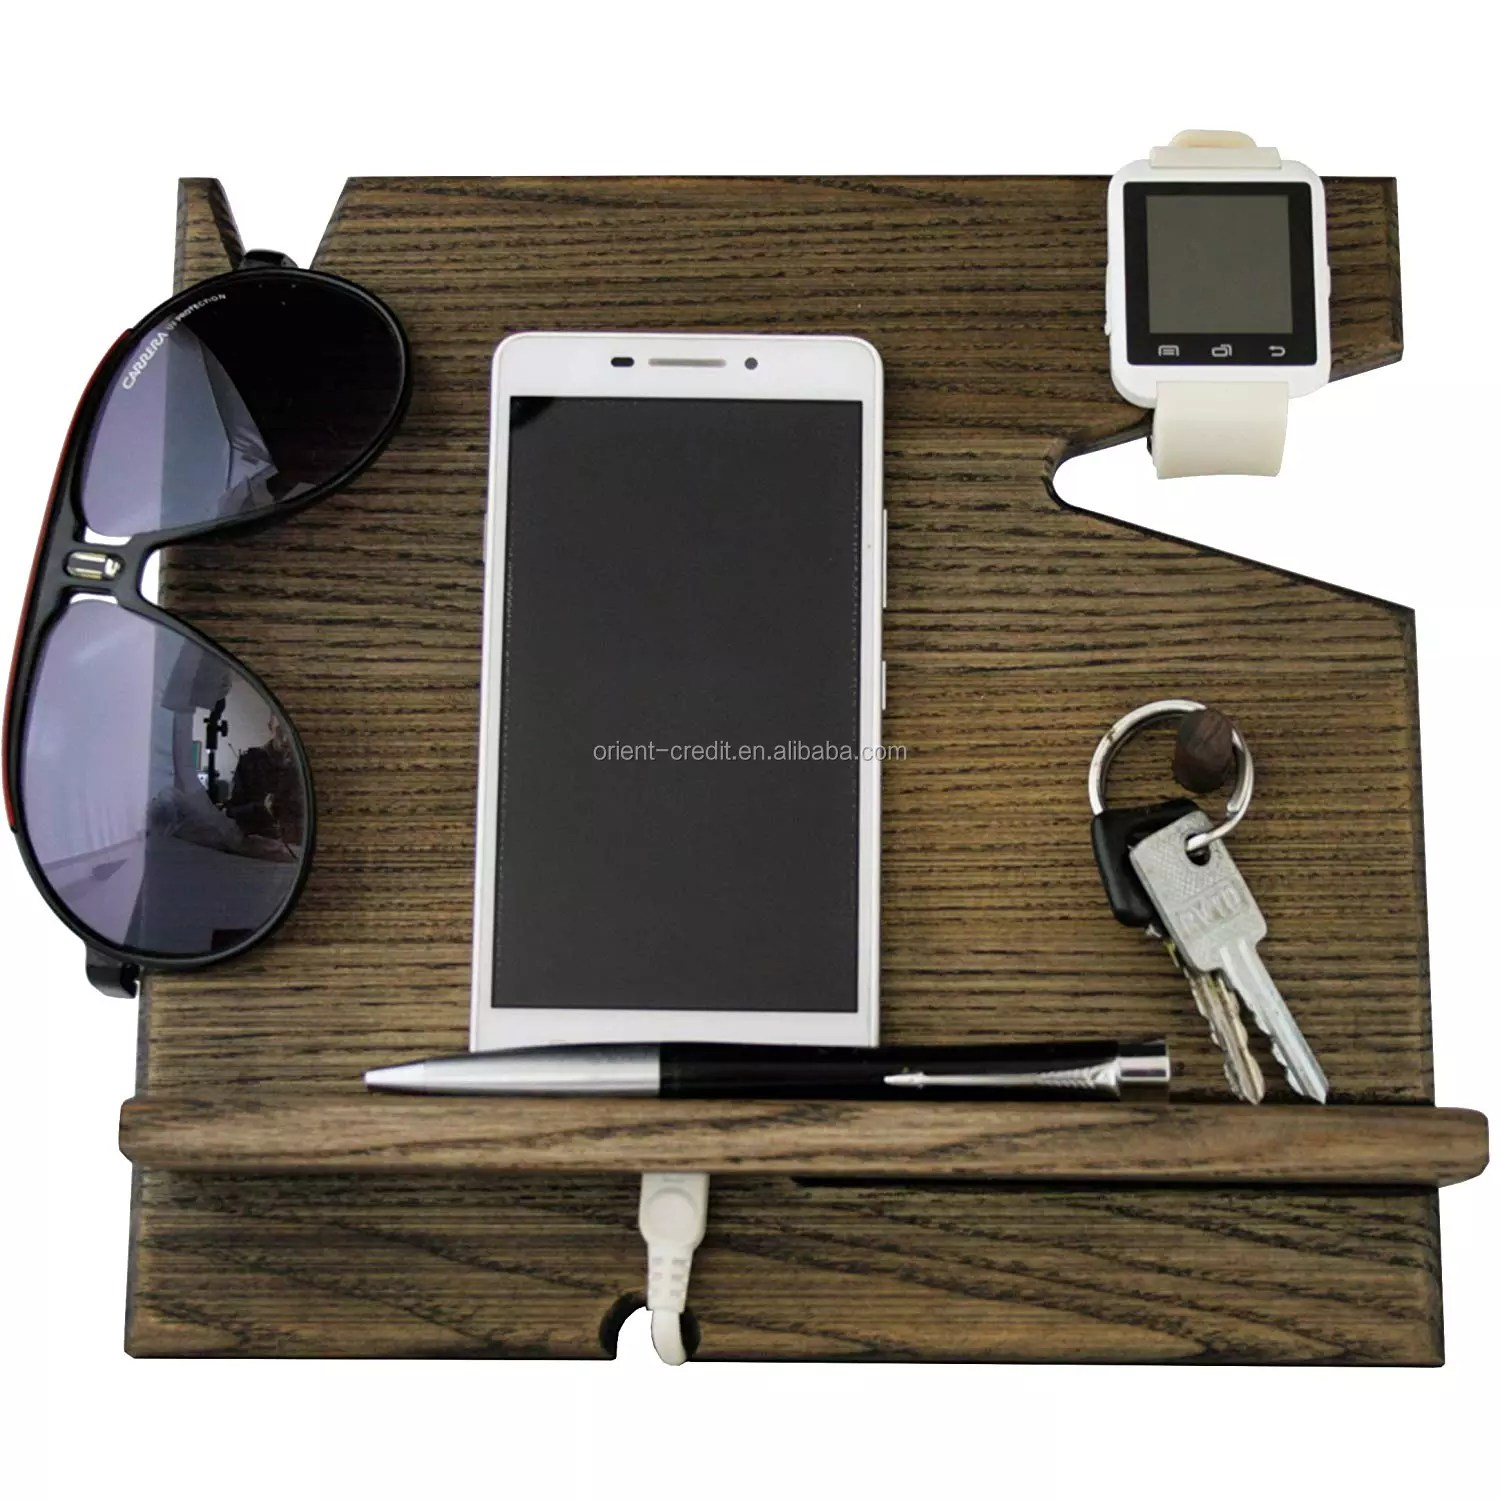 Wooden Cell Phone Stand Nightstand Multiple Charging Dock Watches Holder Wood Valet Key Tray Organizer Mens Gifts Buy Wooden Cell Phone Stand Wood